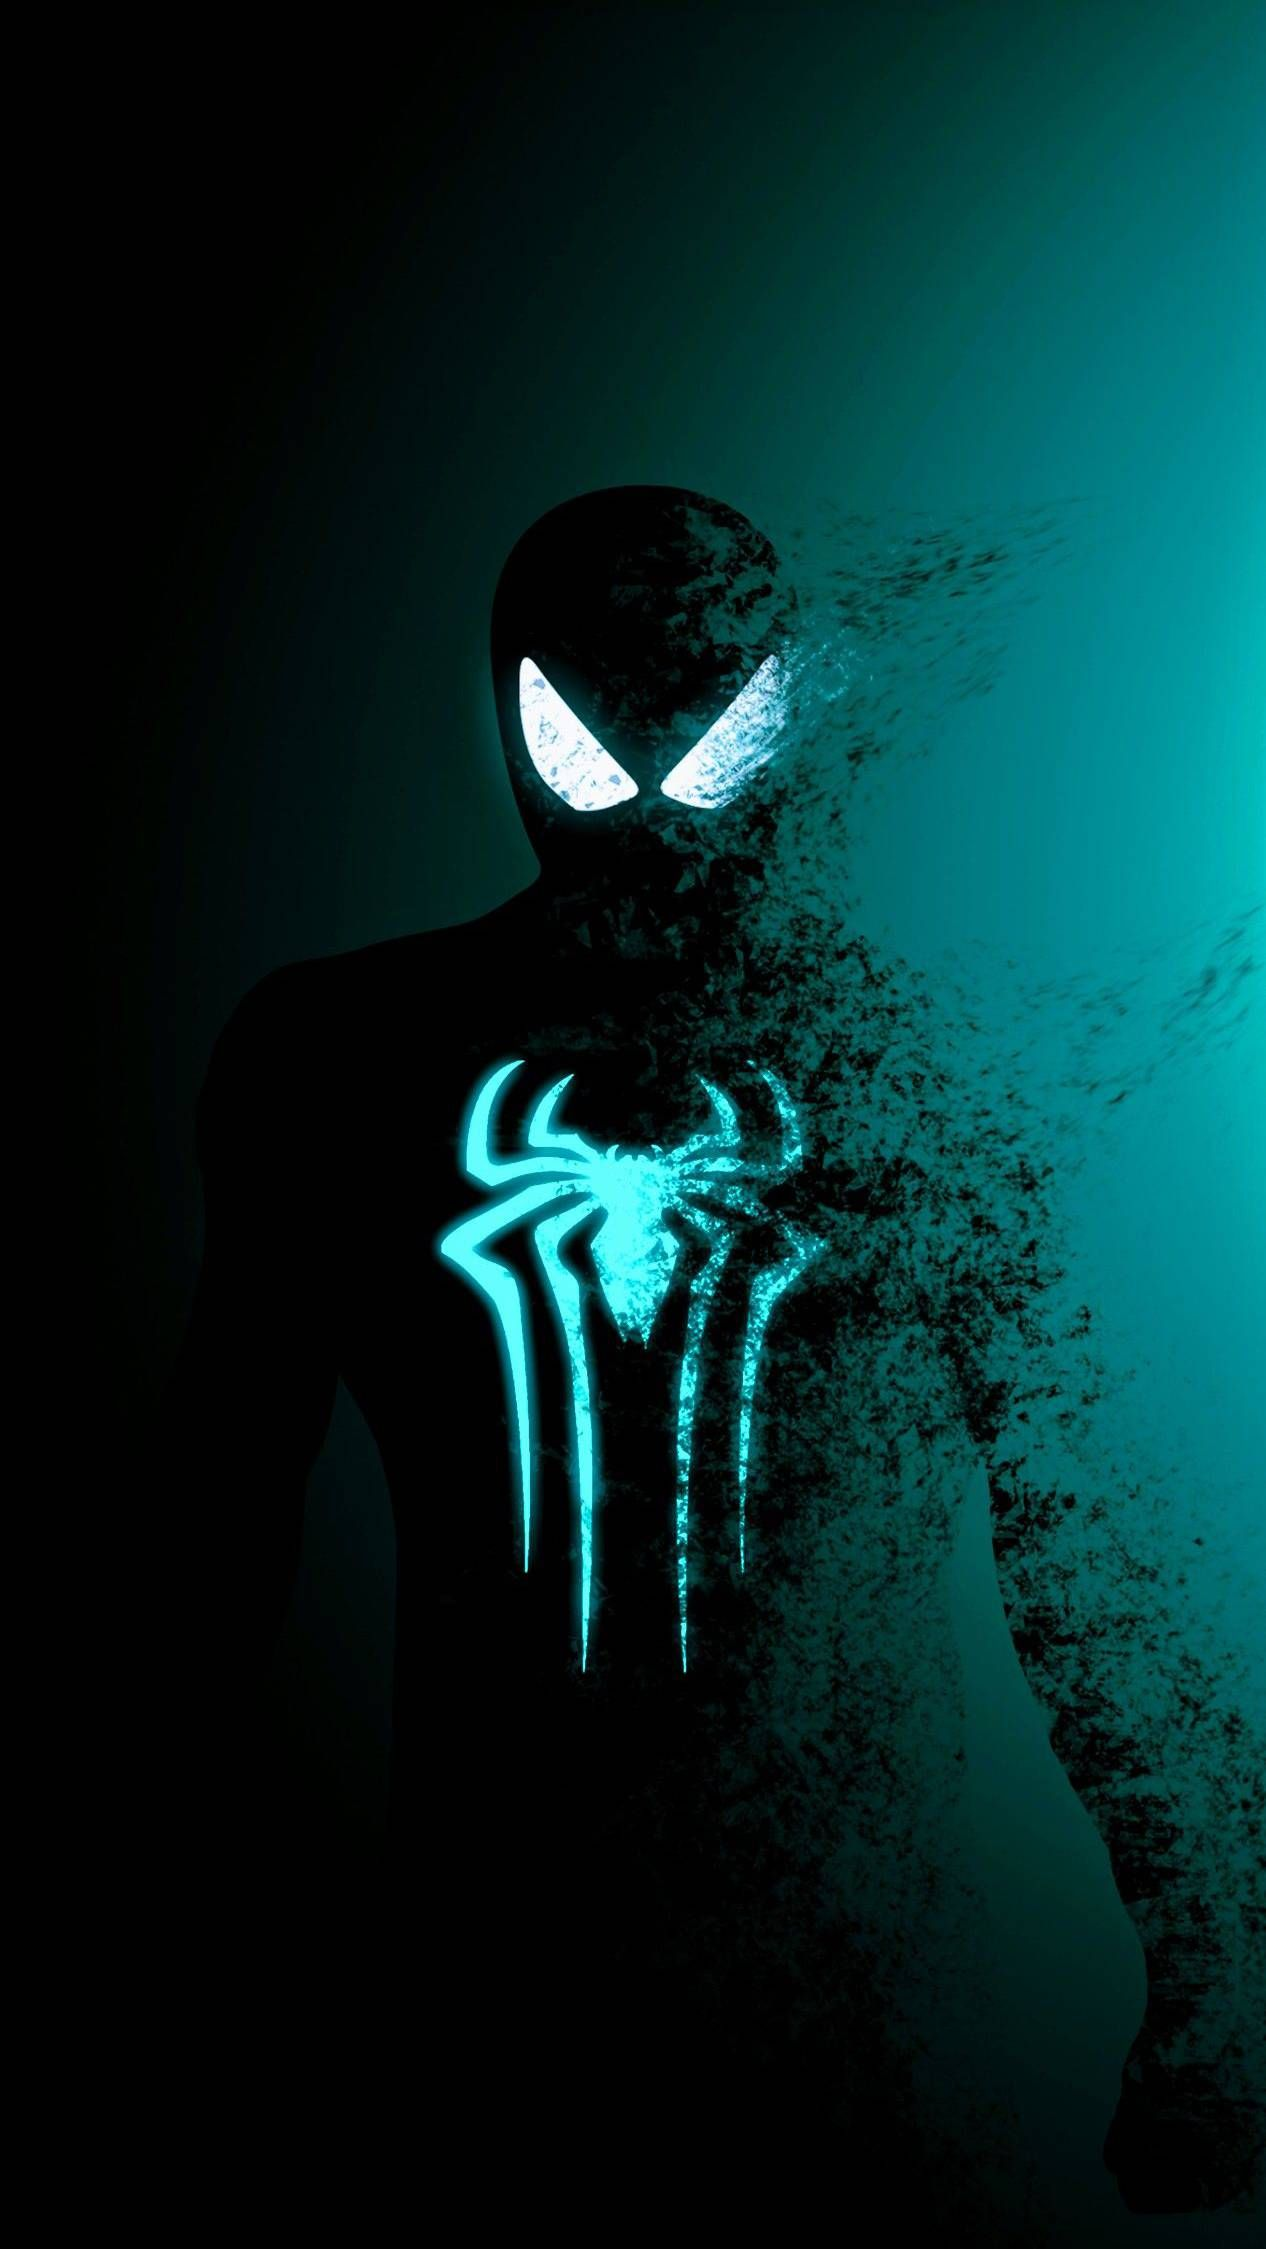 Black Spidey Iphone Wallpaper Spiderman Artwork Spiderman Art